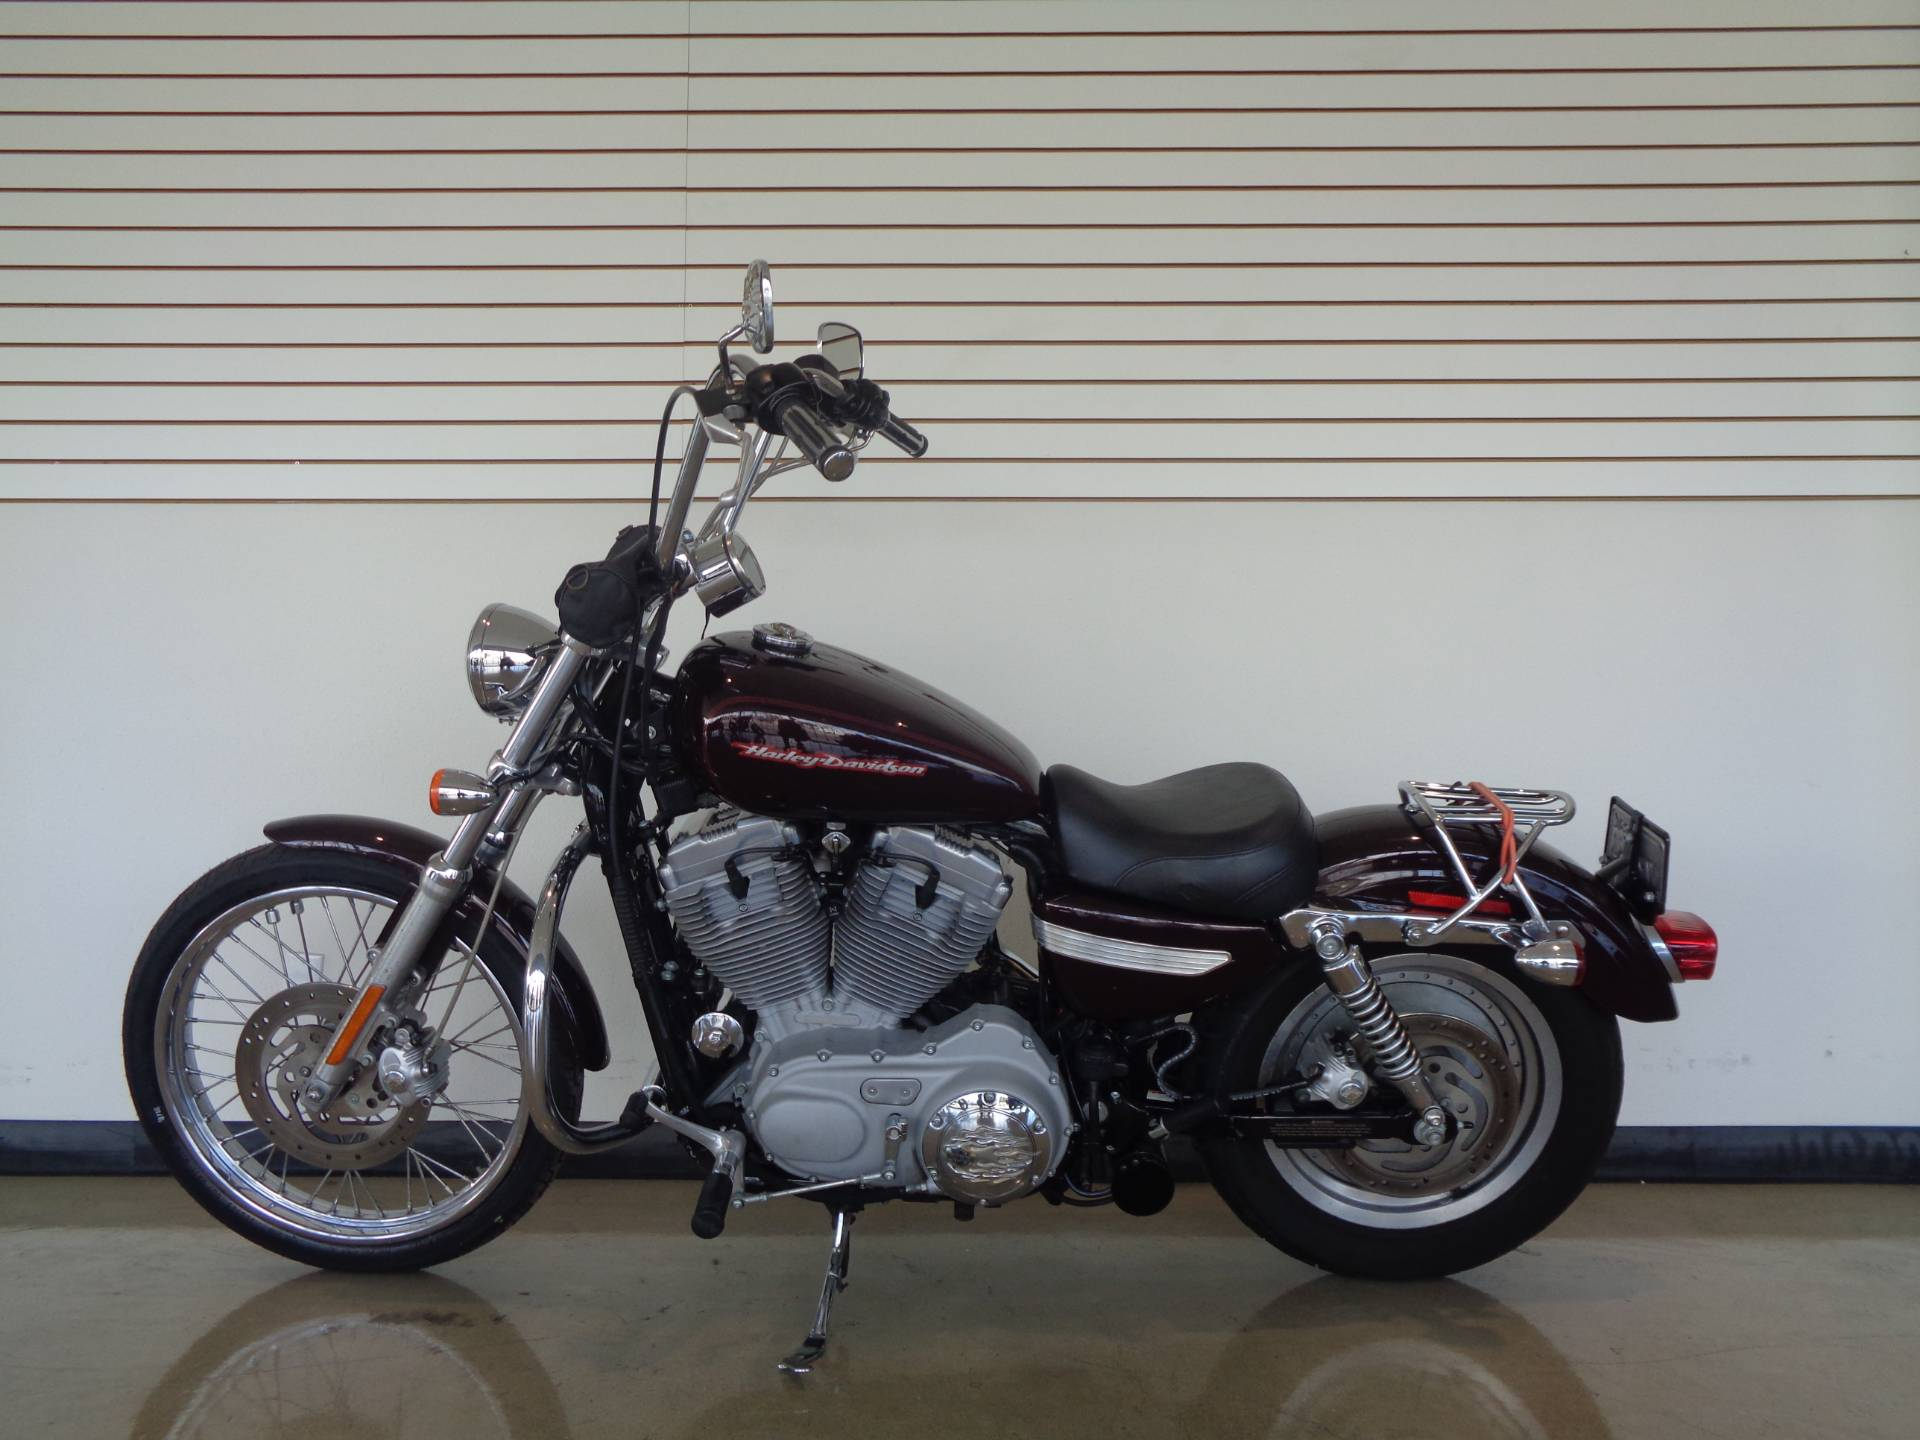 2005 Harley-Davidson Sportster® XL 883C in Chula Vista, California - Photo 12